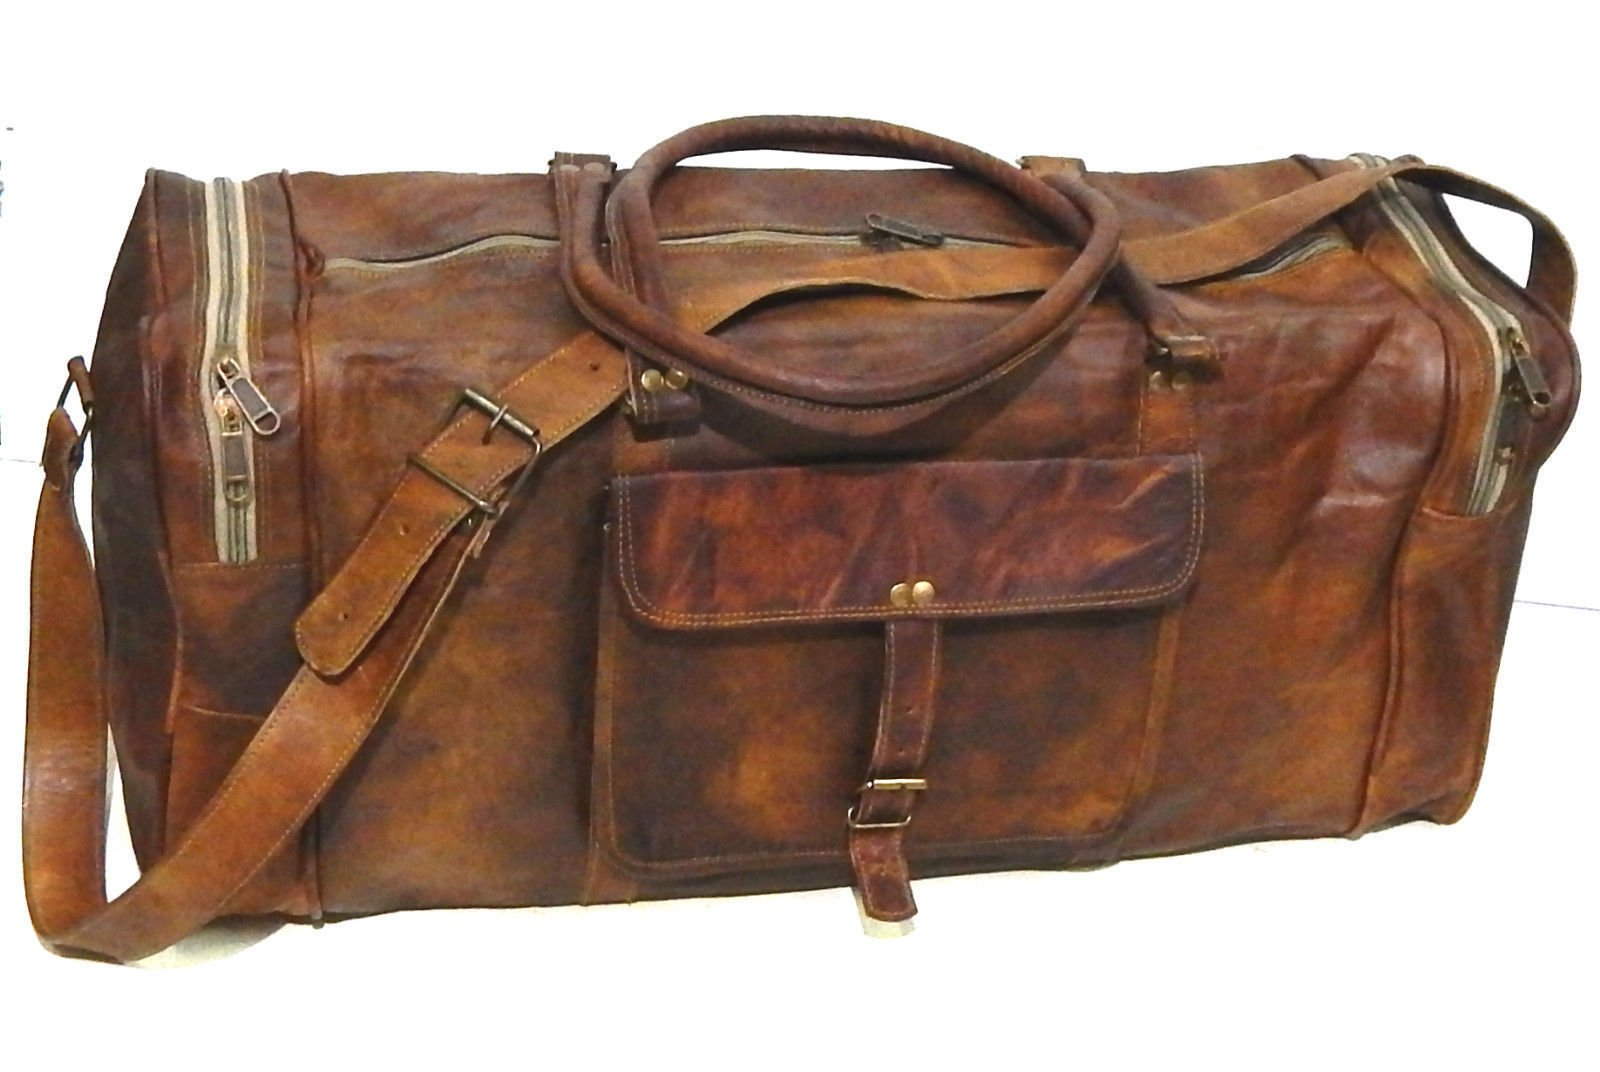 Firu-Handmade 24'' Vintage Style Leather Brown Duffel Gym Sports Luggage Bag Handmade by Firu-Handmade (Image #1)